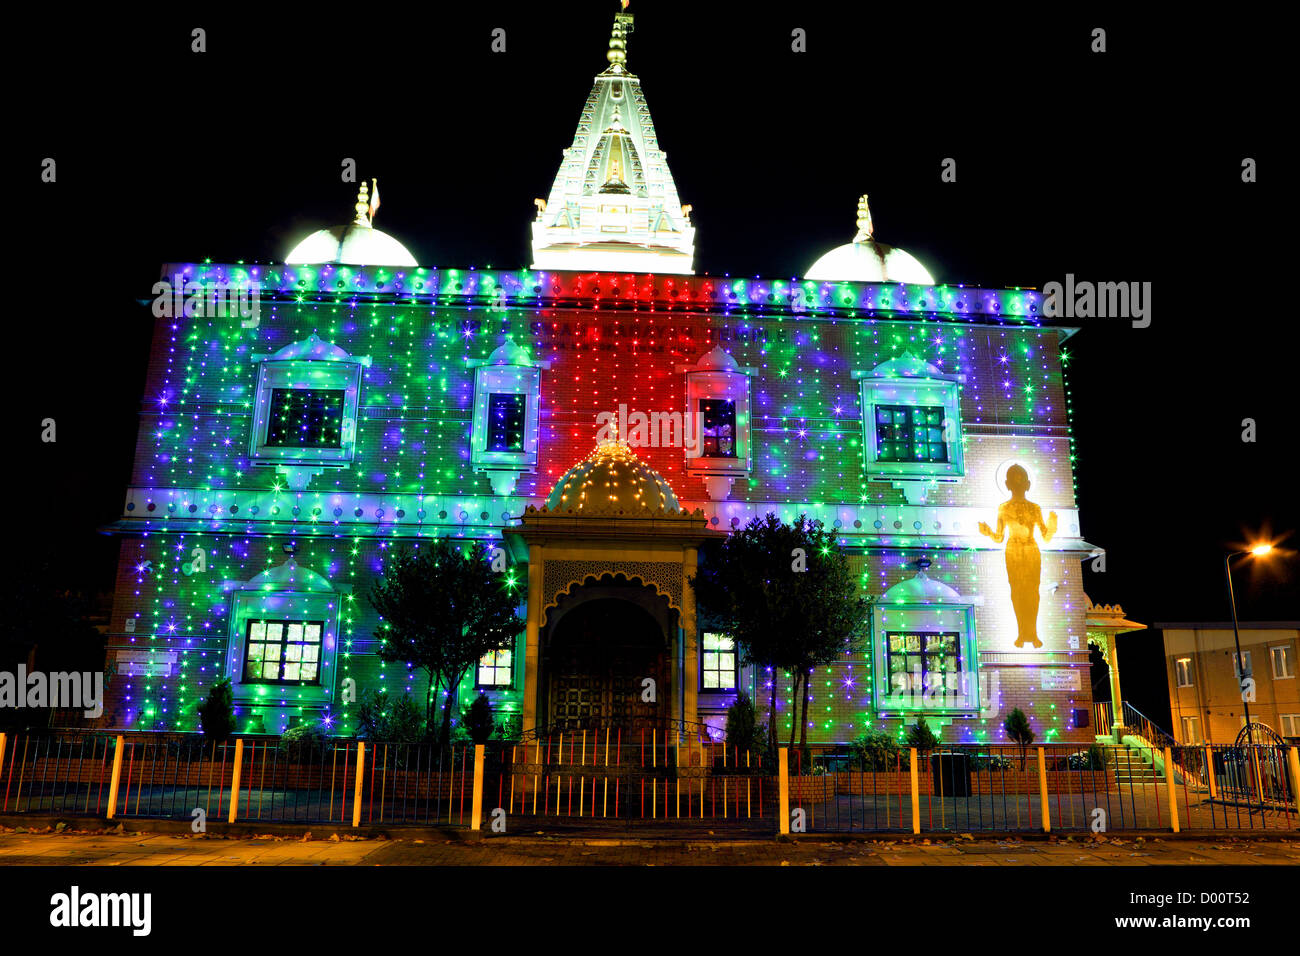 The Shree Swaminarayan Temple, seen here festooned with bright coloured lights celebrating Dawali. - Stock Image